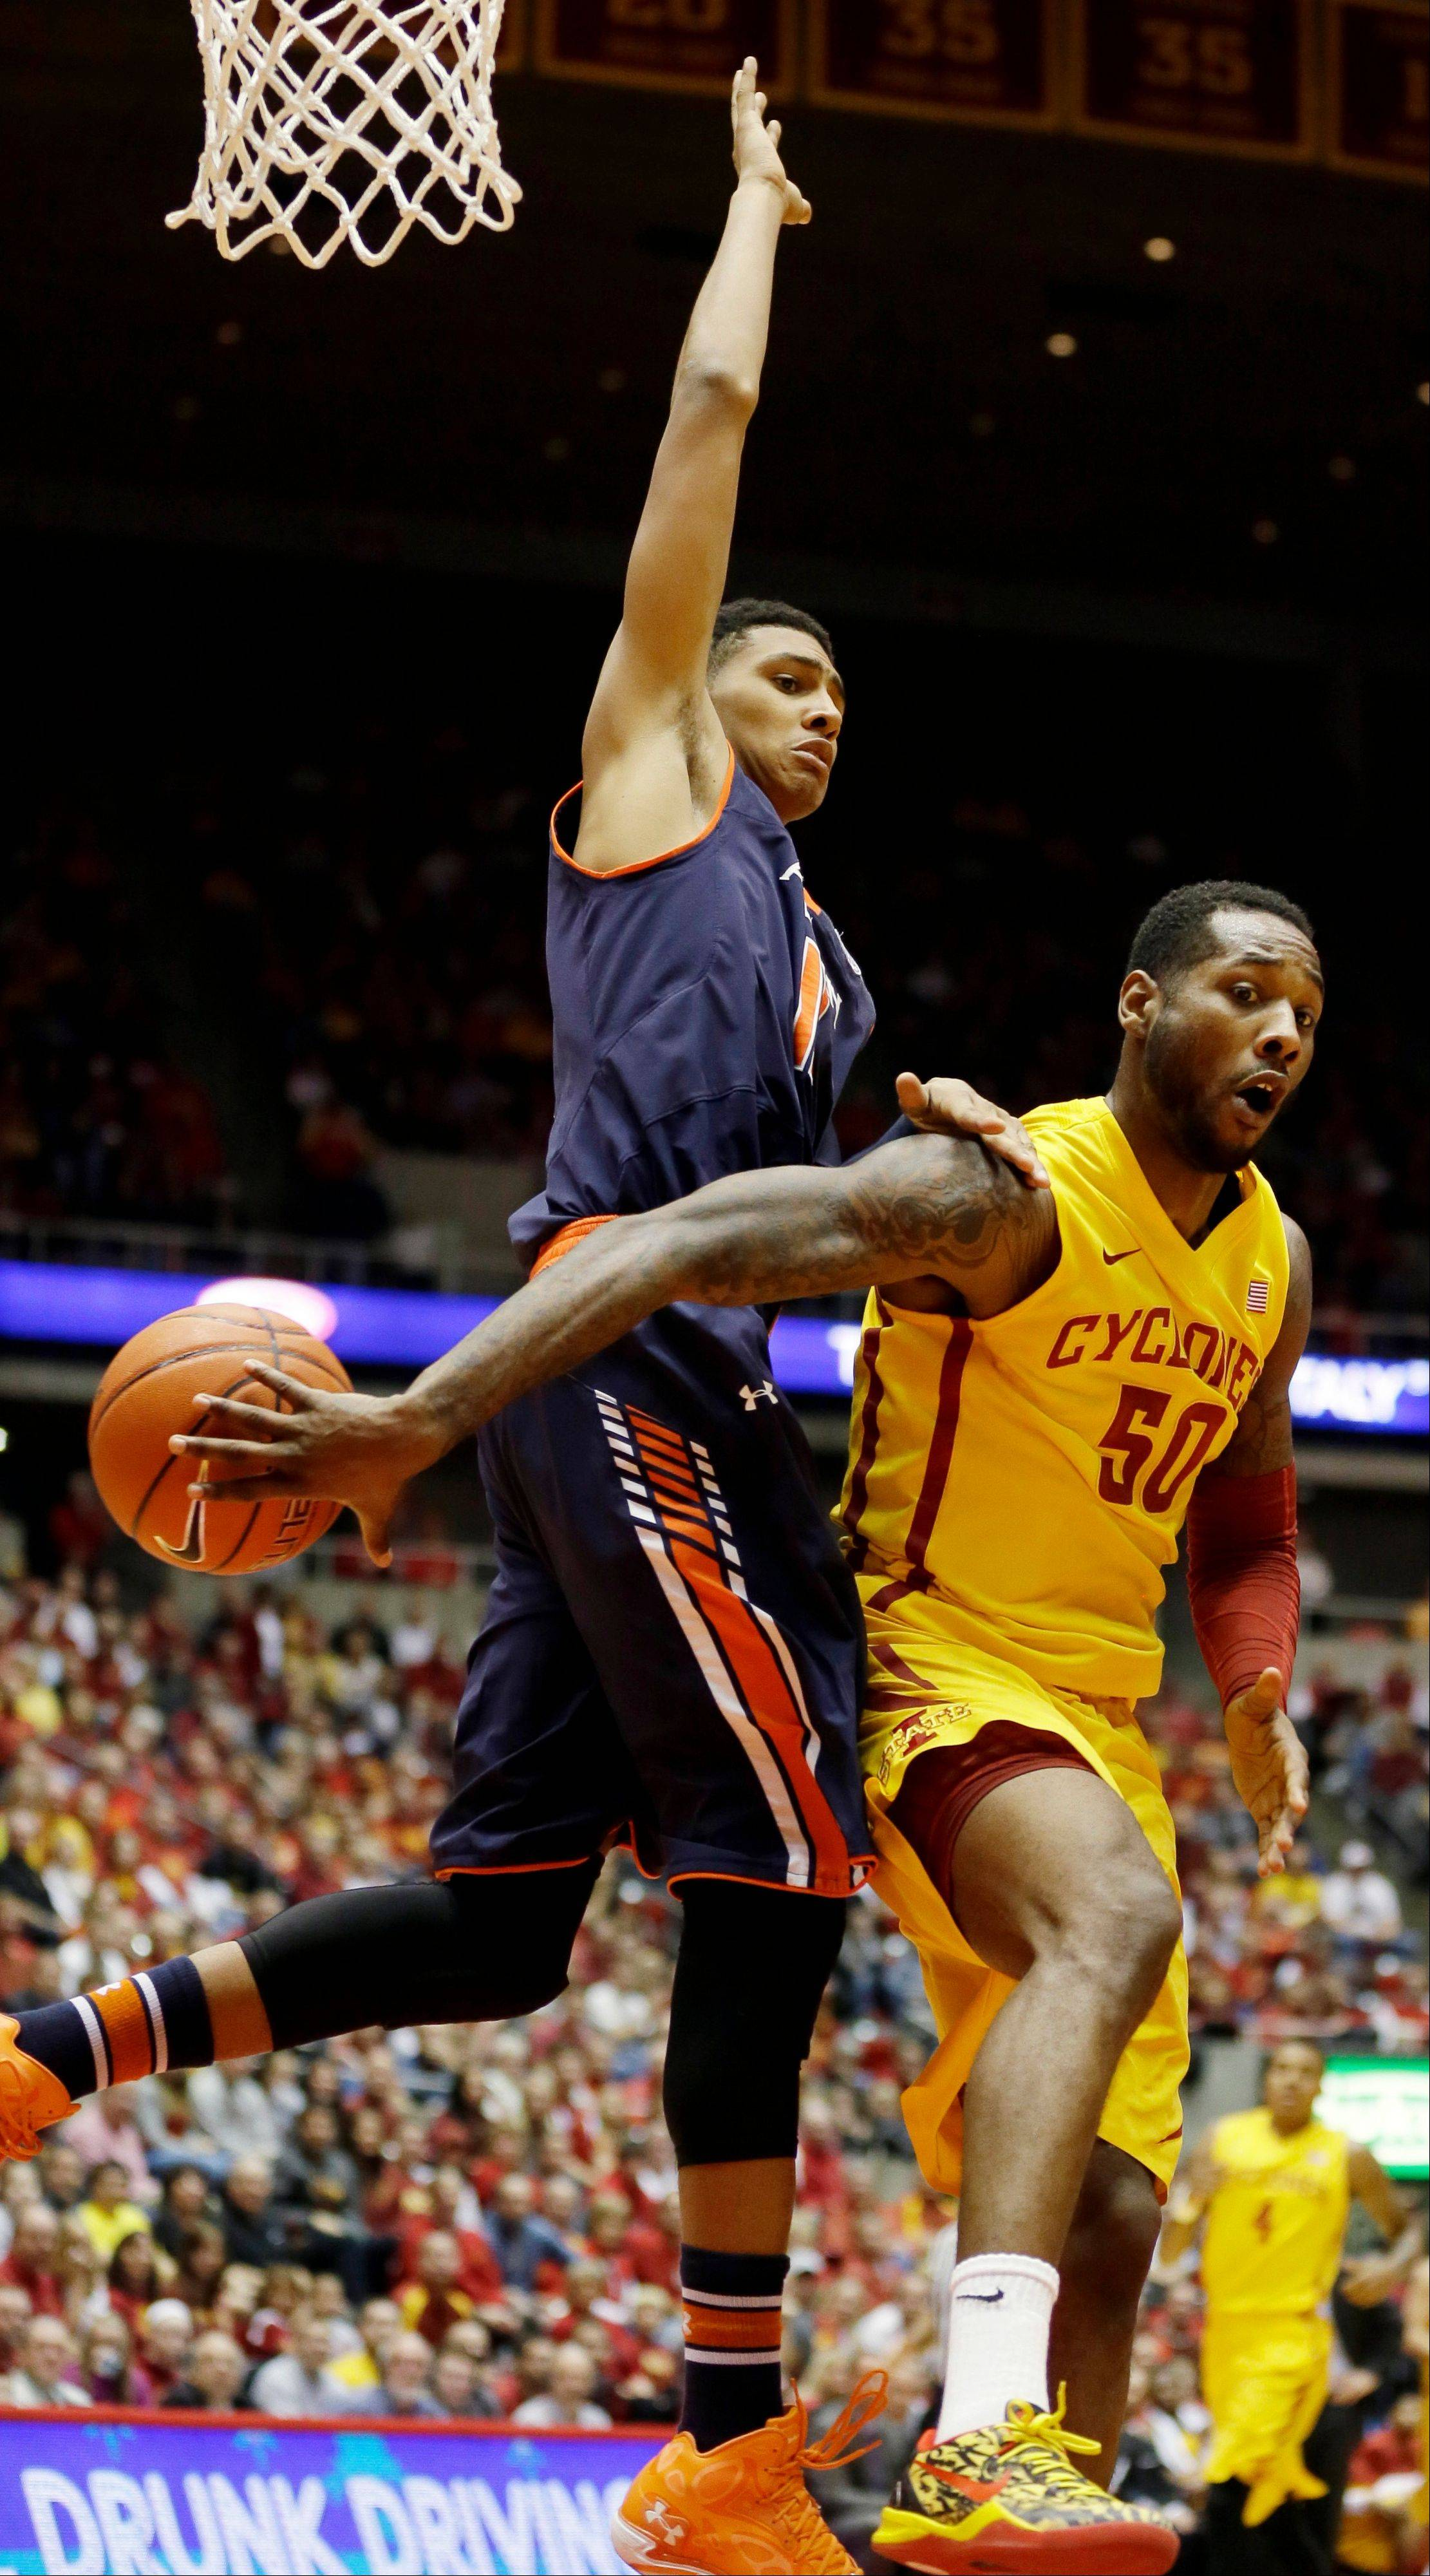 Iowa State guard DeAndre Kane, right, passes around Auburn guard Dion Wade during the first half of an NCAA college basketball game Monday in Ames, Iowa. Iowa State won 99-70.